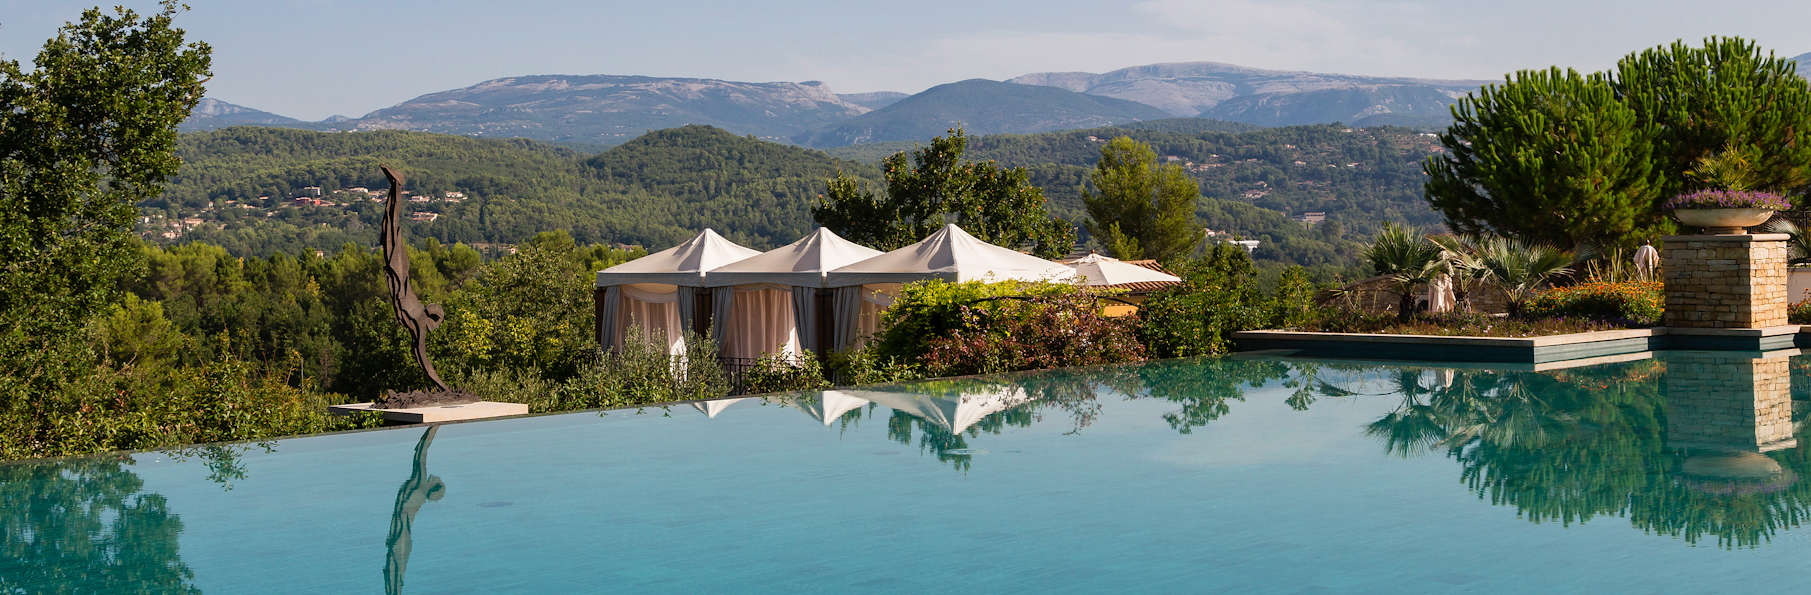 Terre blanche h tel spa golf resort h tel de charme for Reservation hotel paca